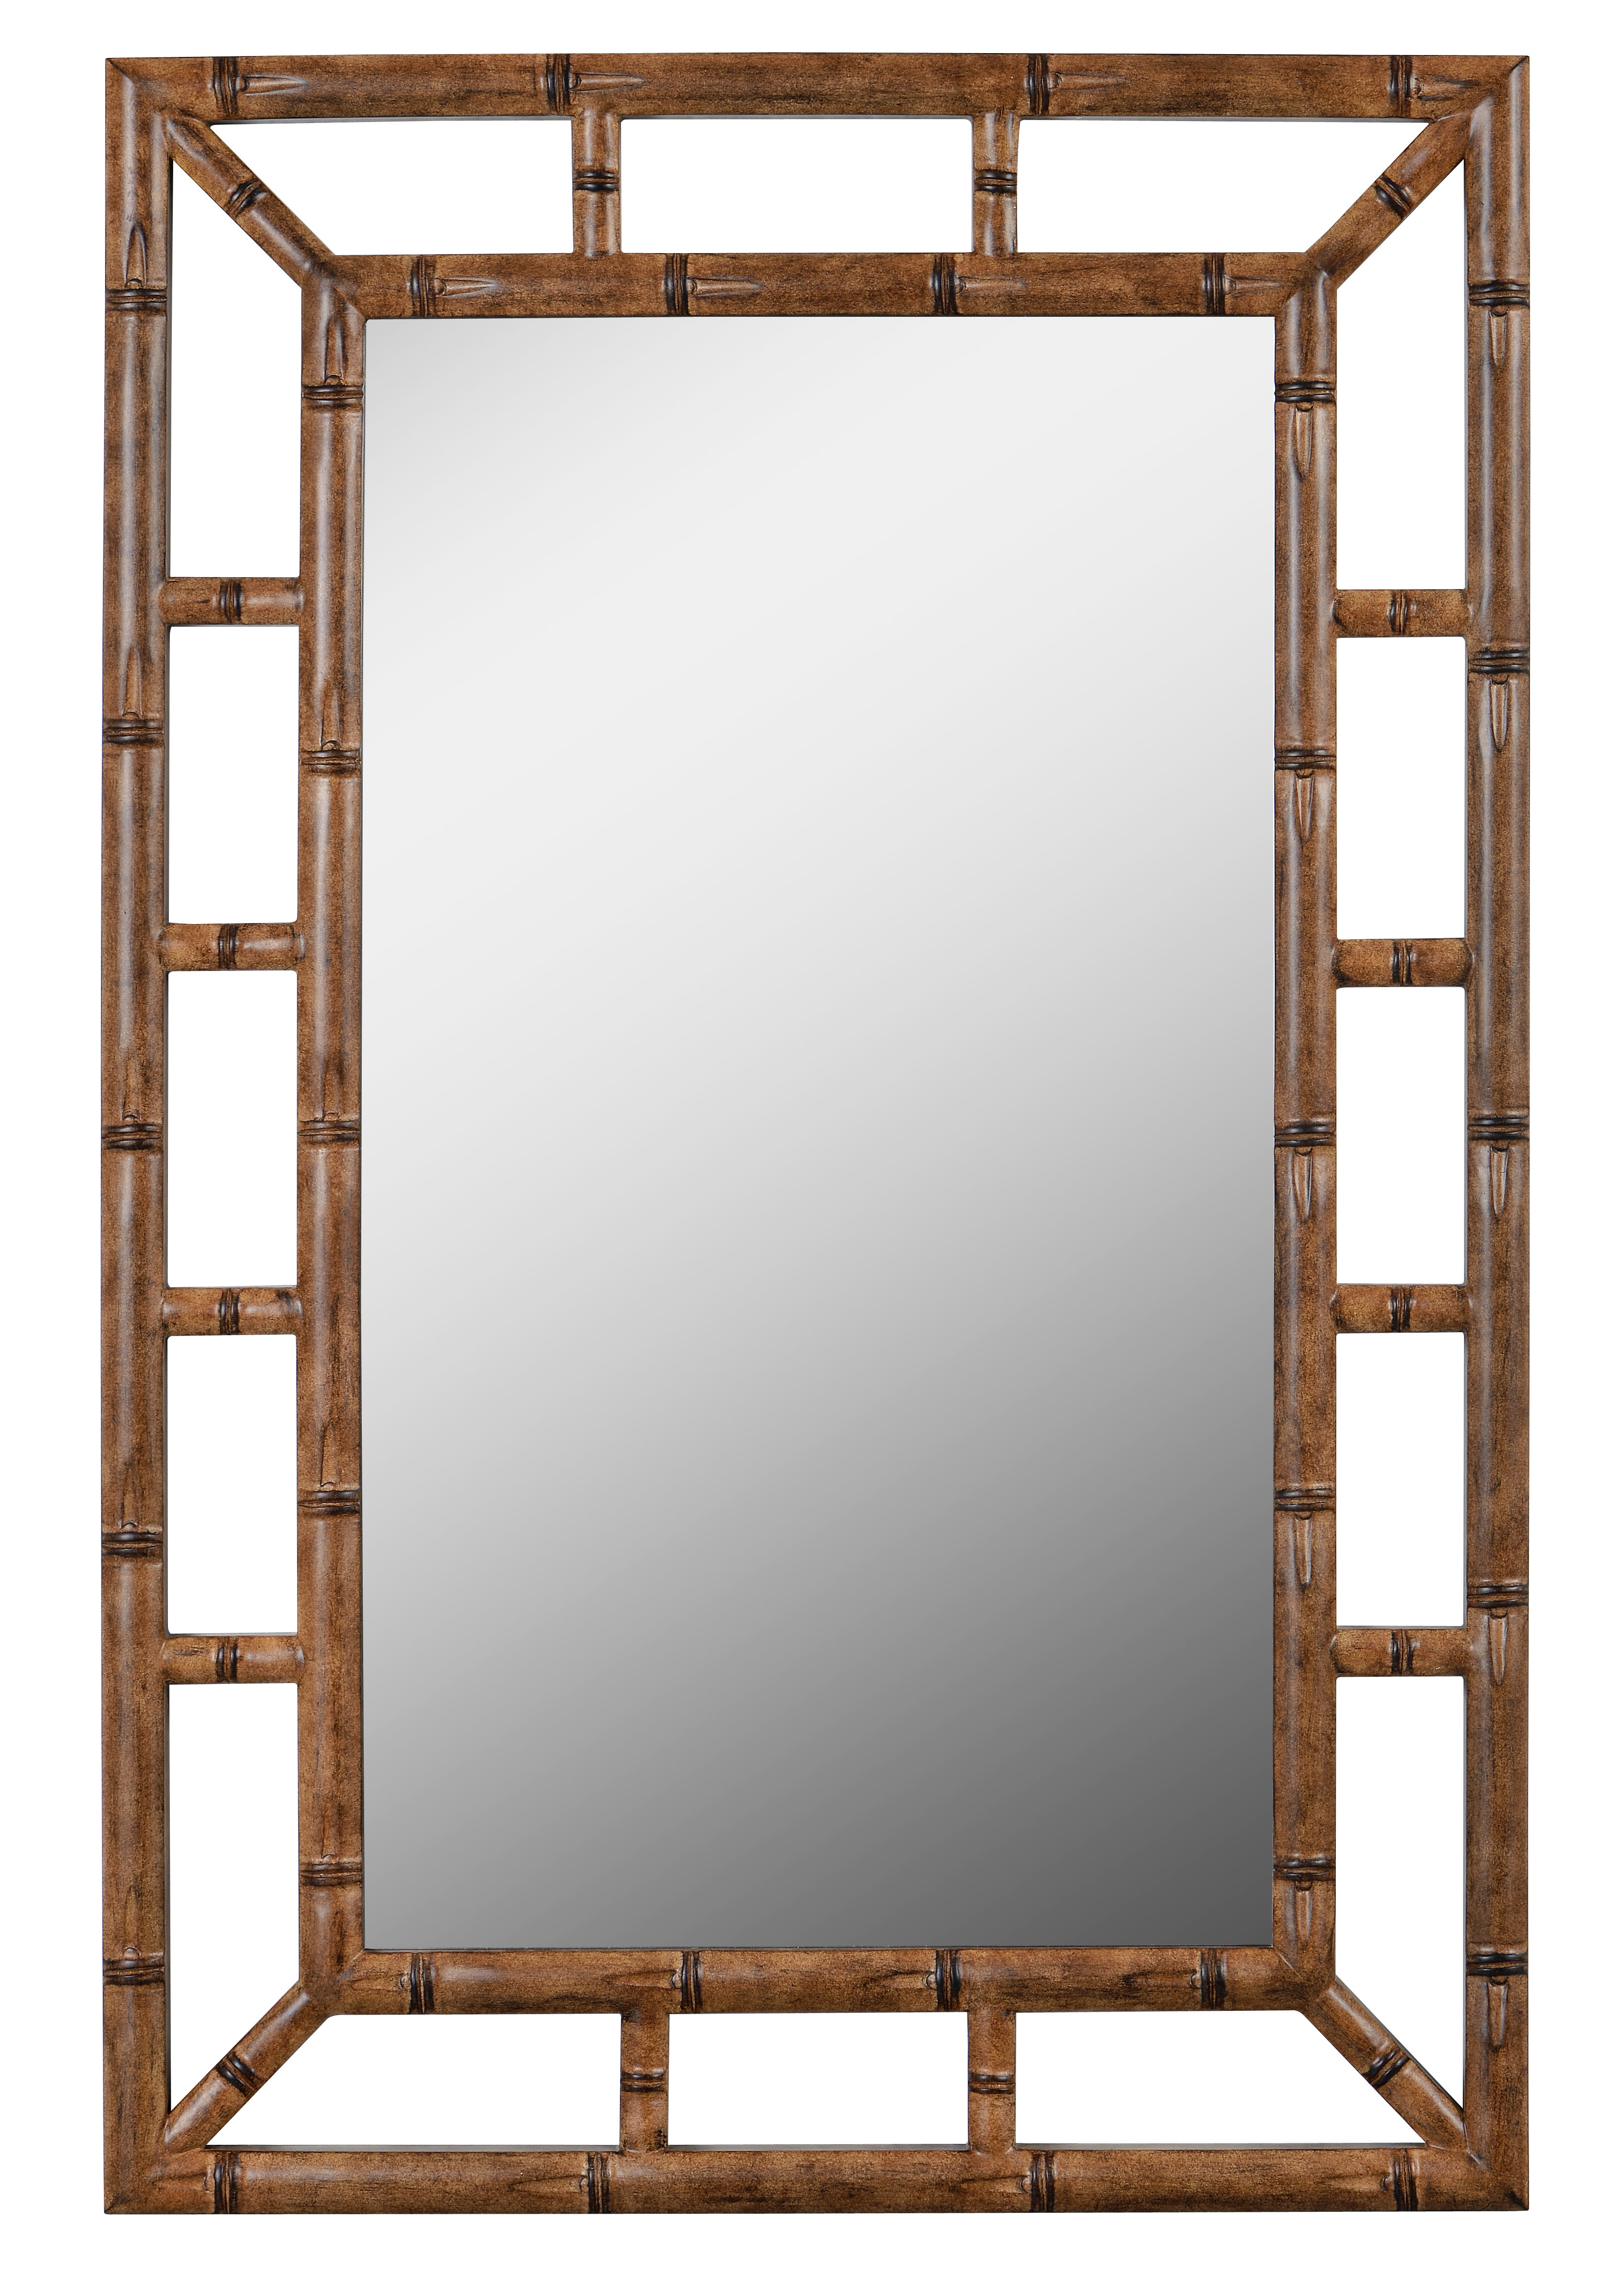 Cleta Bamboo Brown Traditional Beveled Wall Mirror intended for Boyers Wall Mirrors (Image 10 of 30)